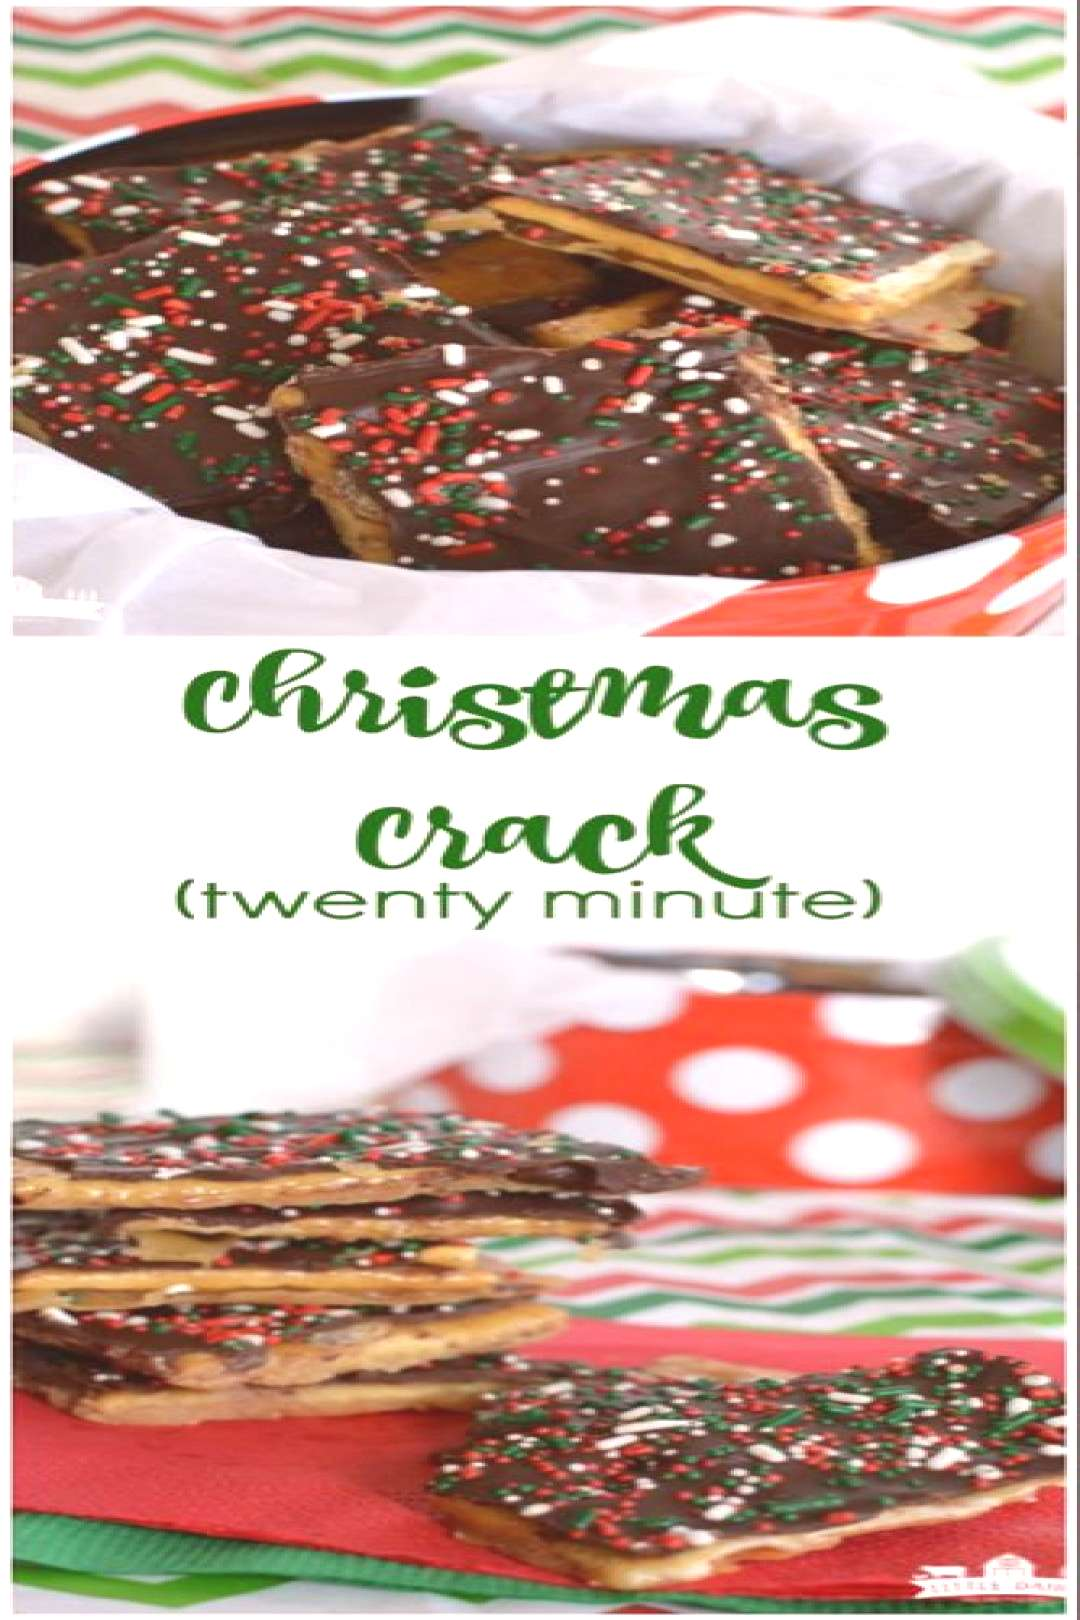 20 Minute Christmas Crack | Page 2 of 2 | Little Dairy On the Prairie